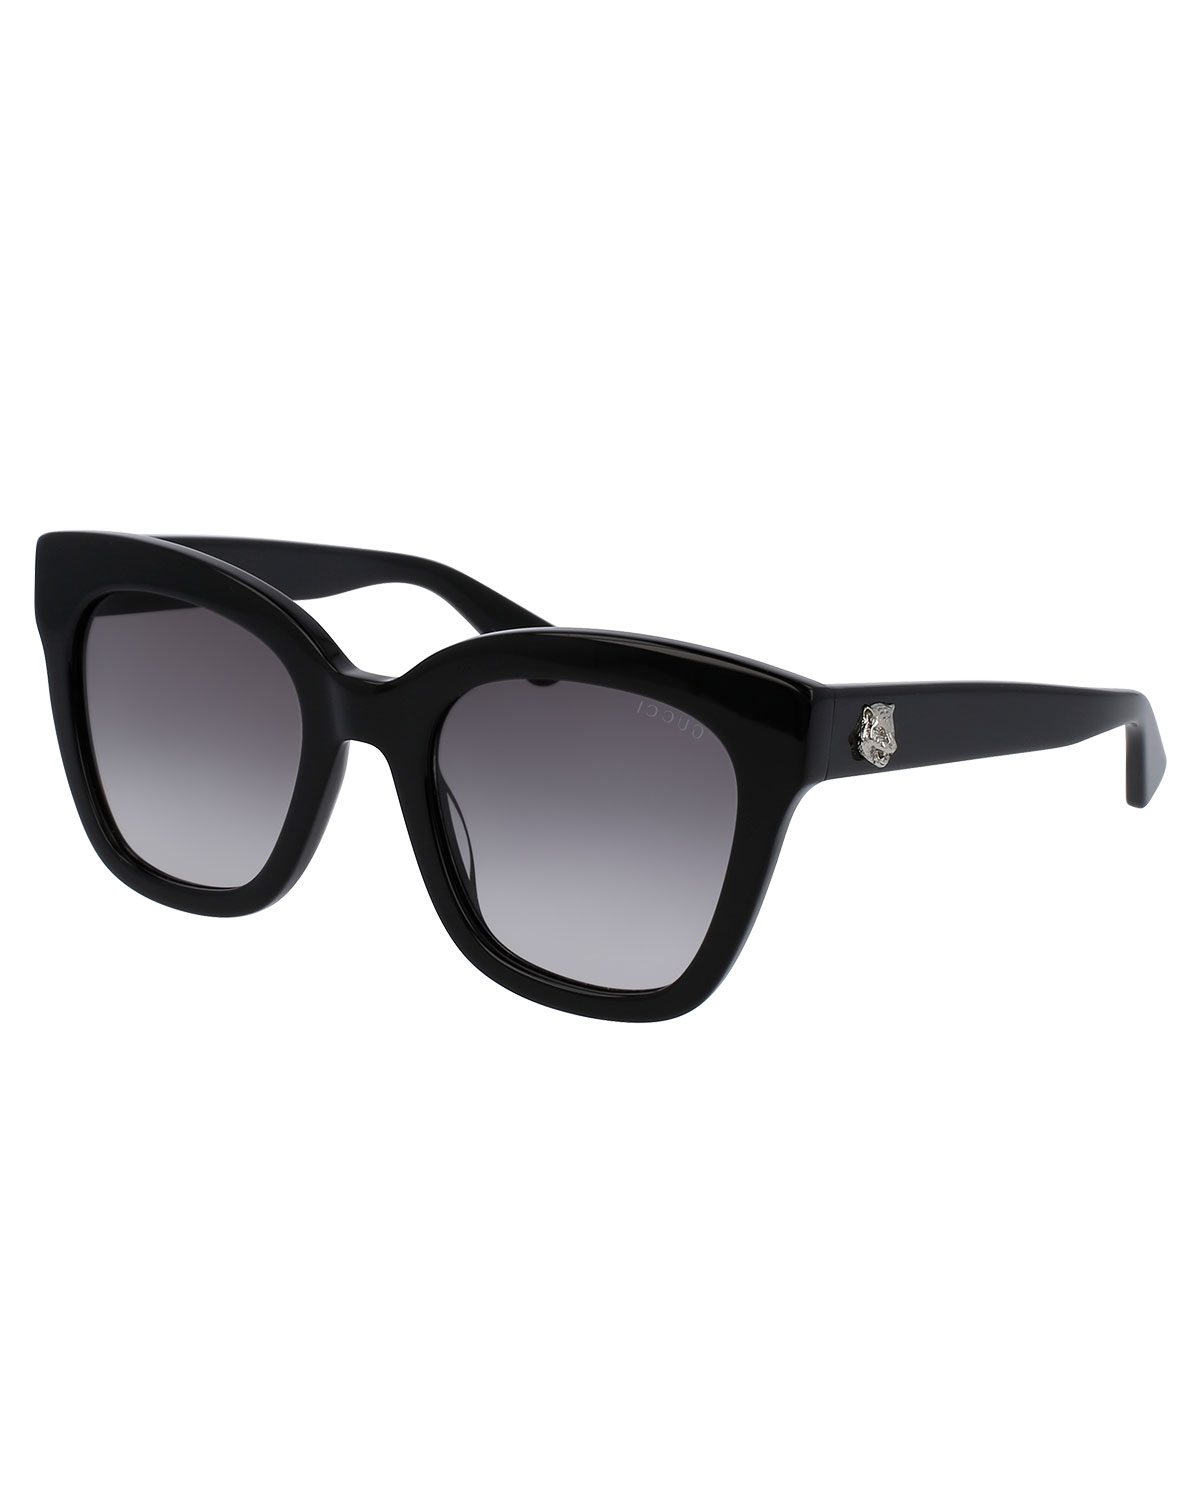 Gucci Gradient Cat-Eye Sunglasses, Black | Neiman Marcus